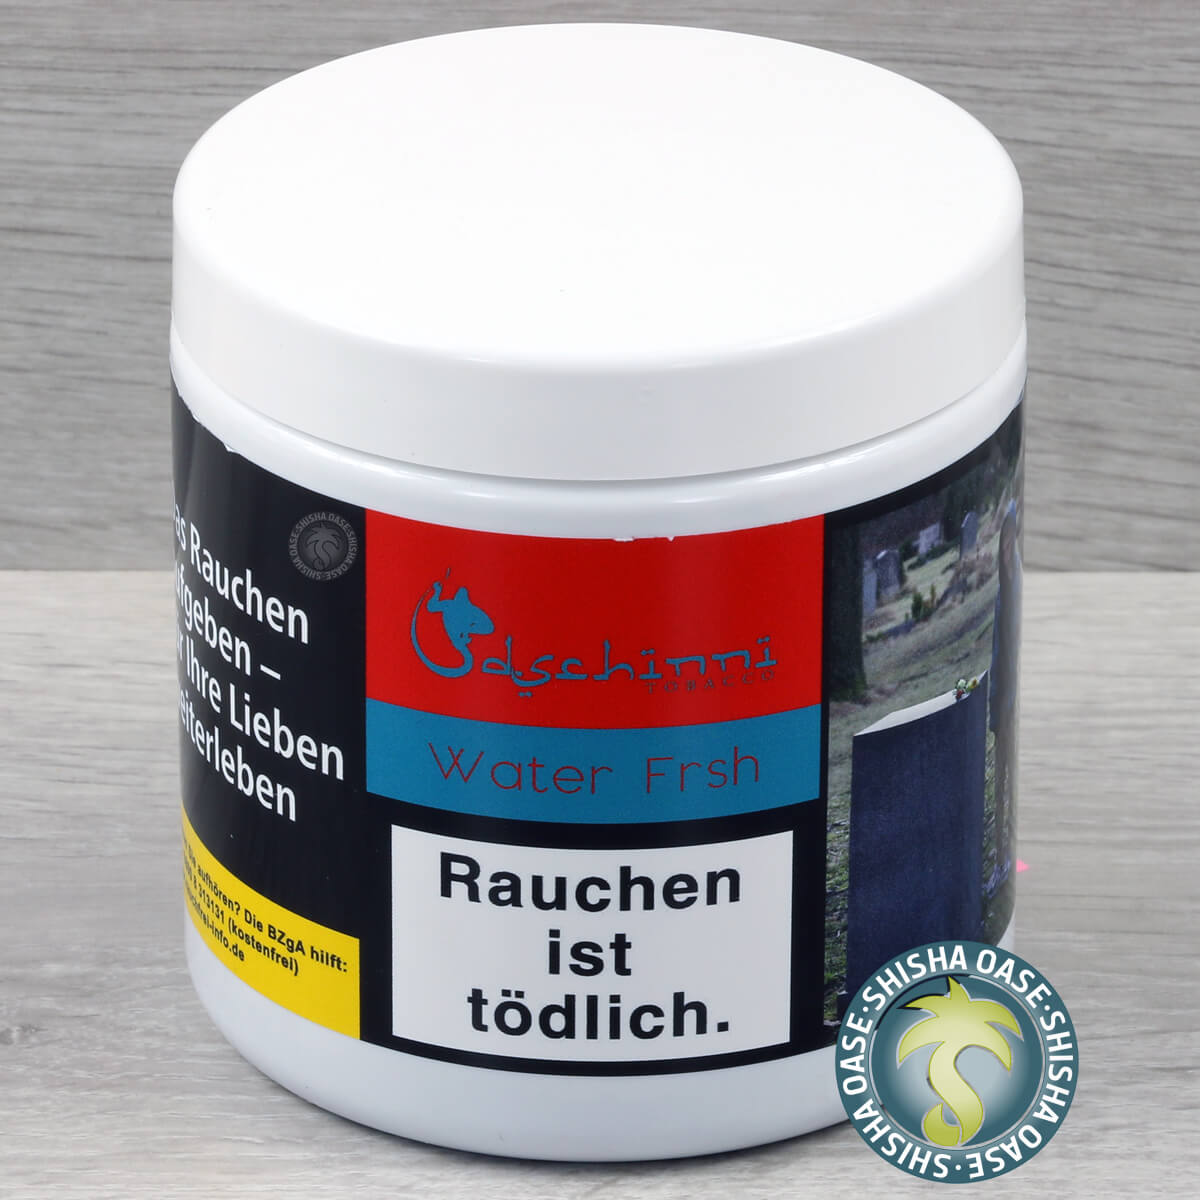 Dschinni Tobacco - Water Frsh 200g